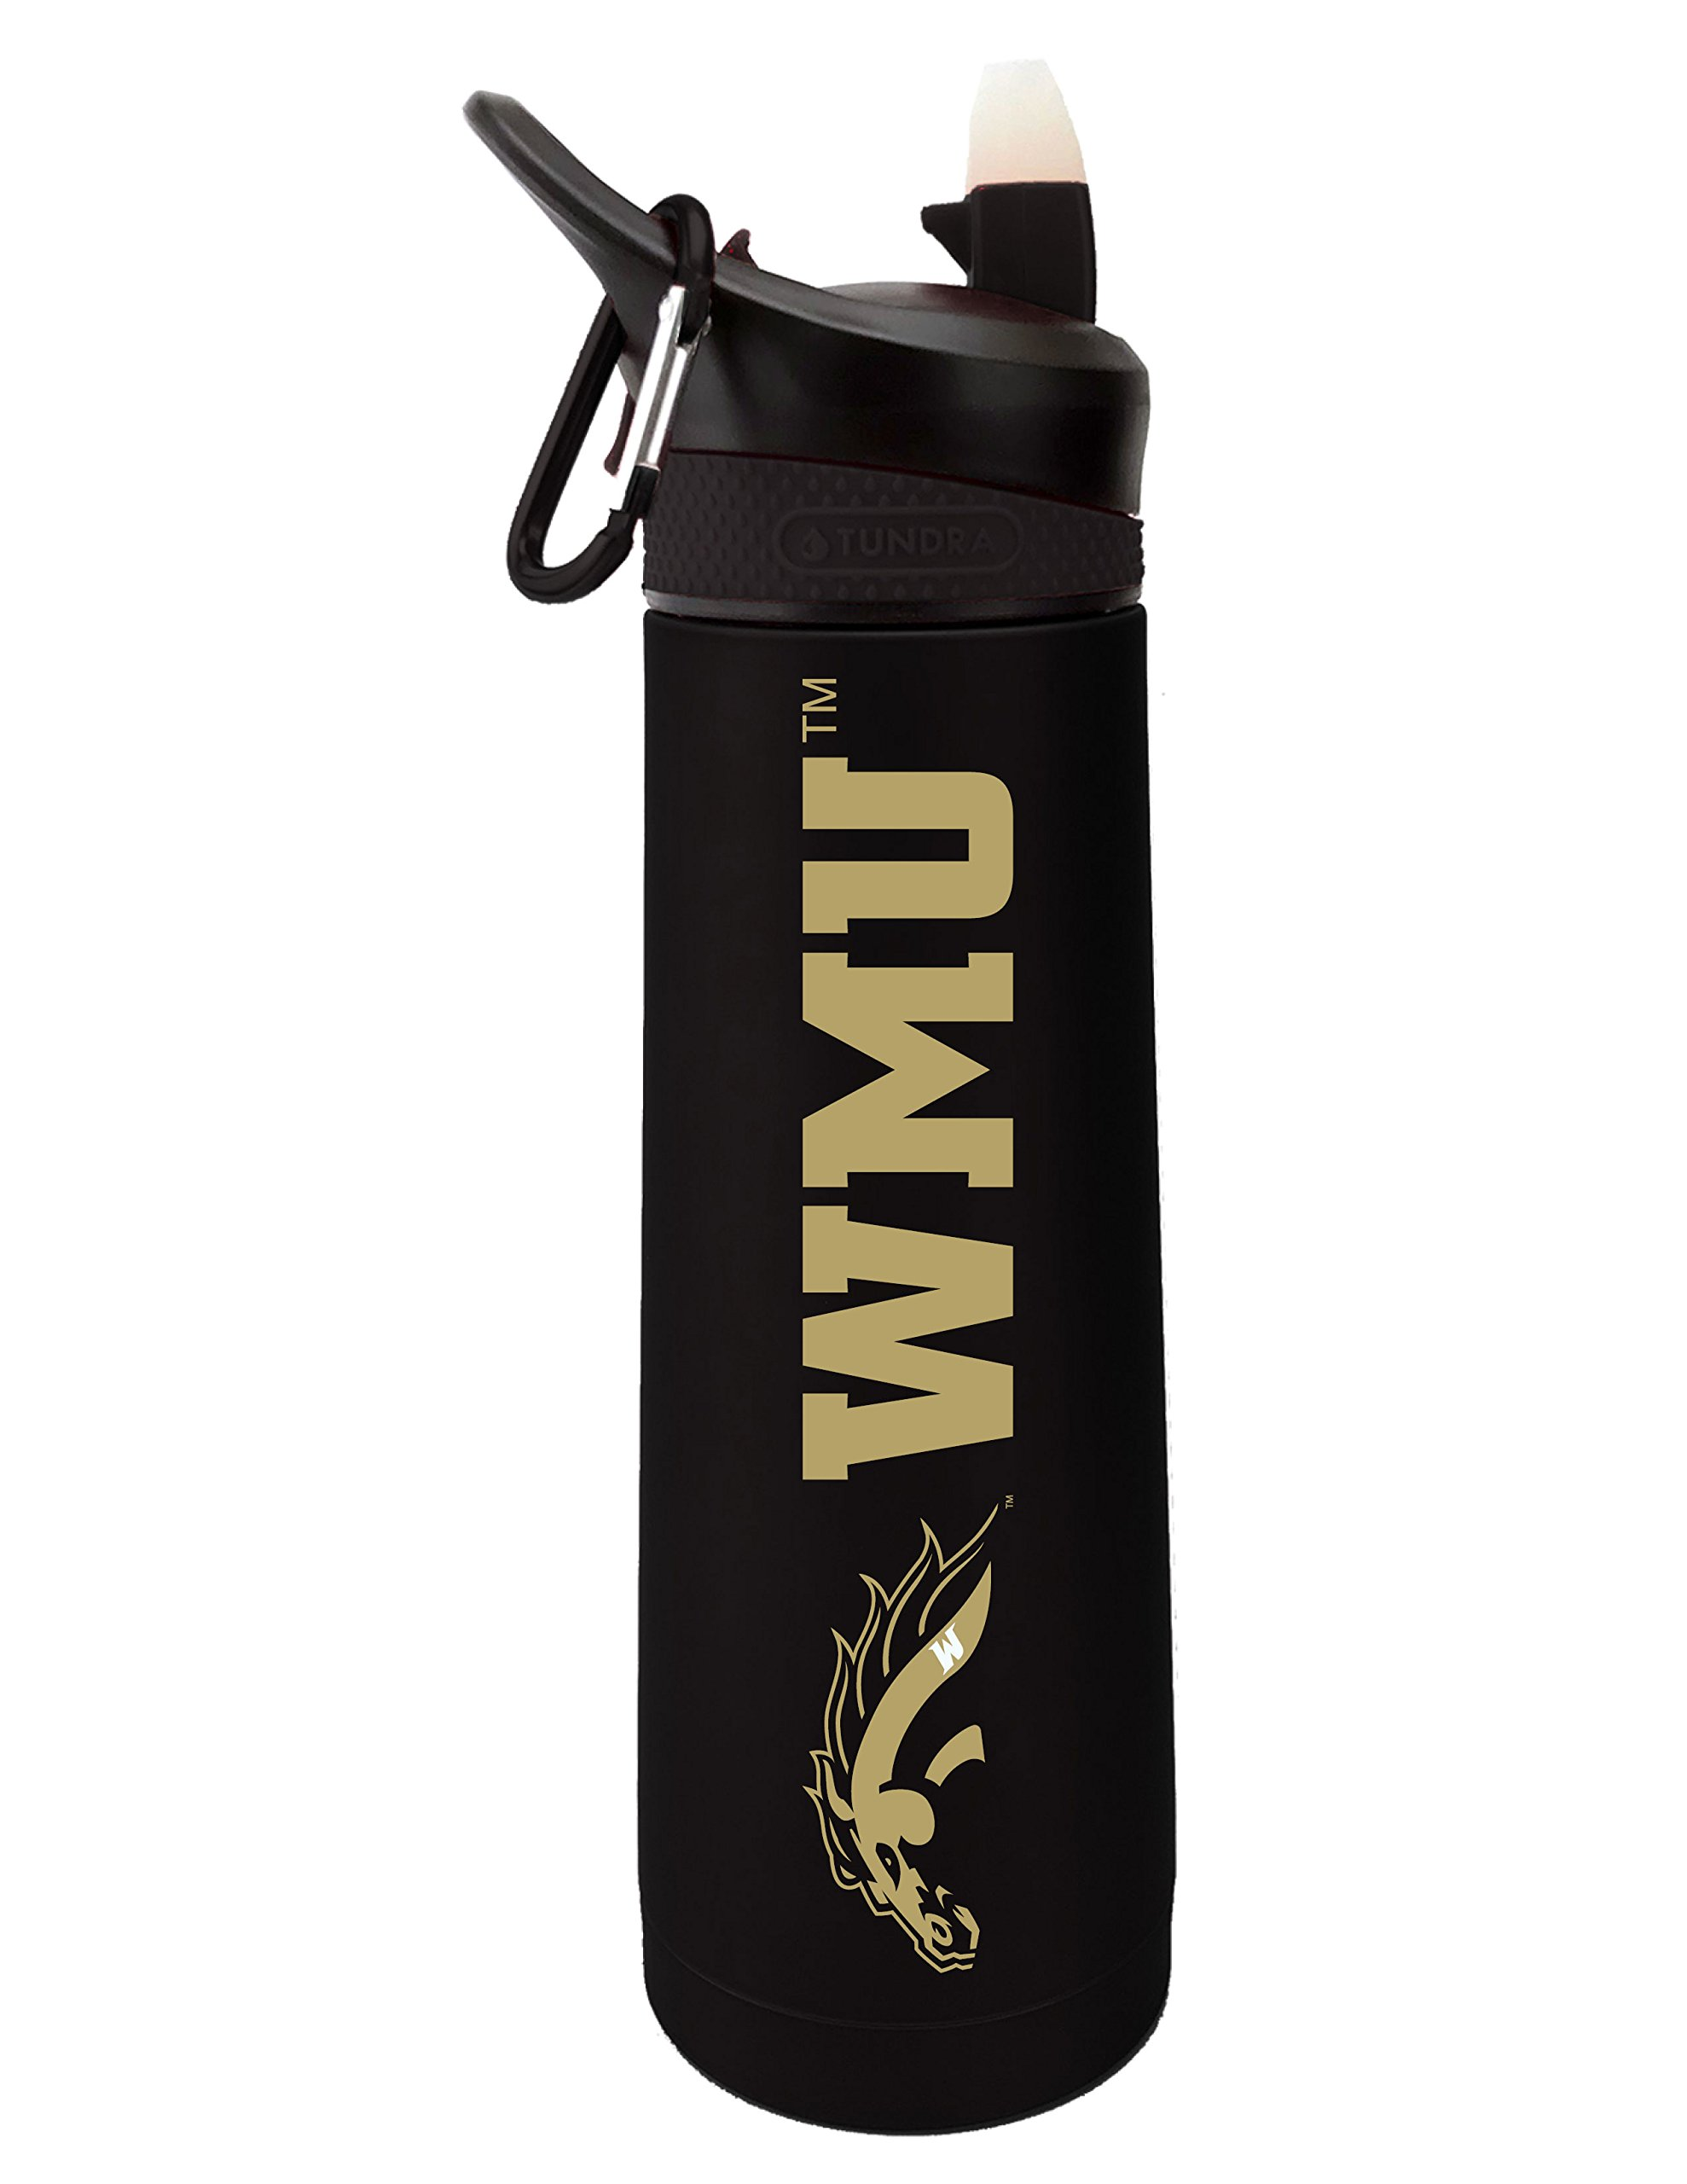 Fanatic Group Western Michigan University Dual Walled Stainless Steel Sports Bottle, Design 2 - Black